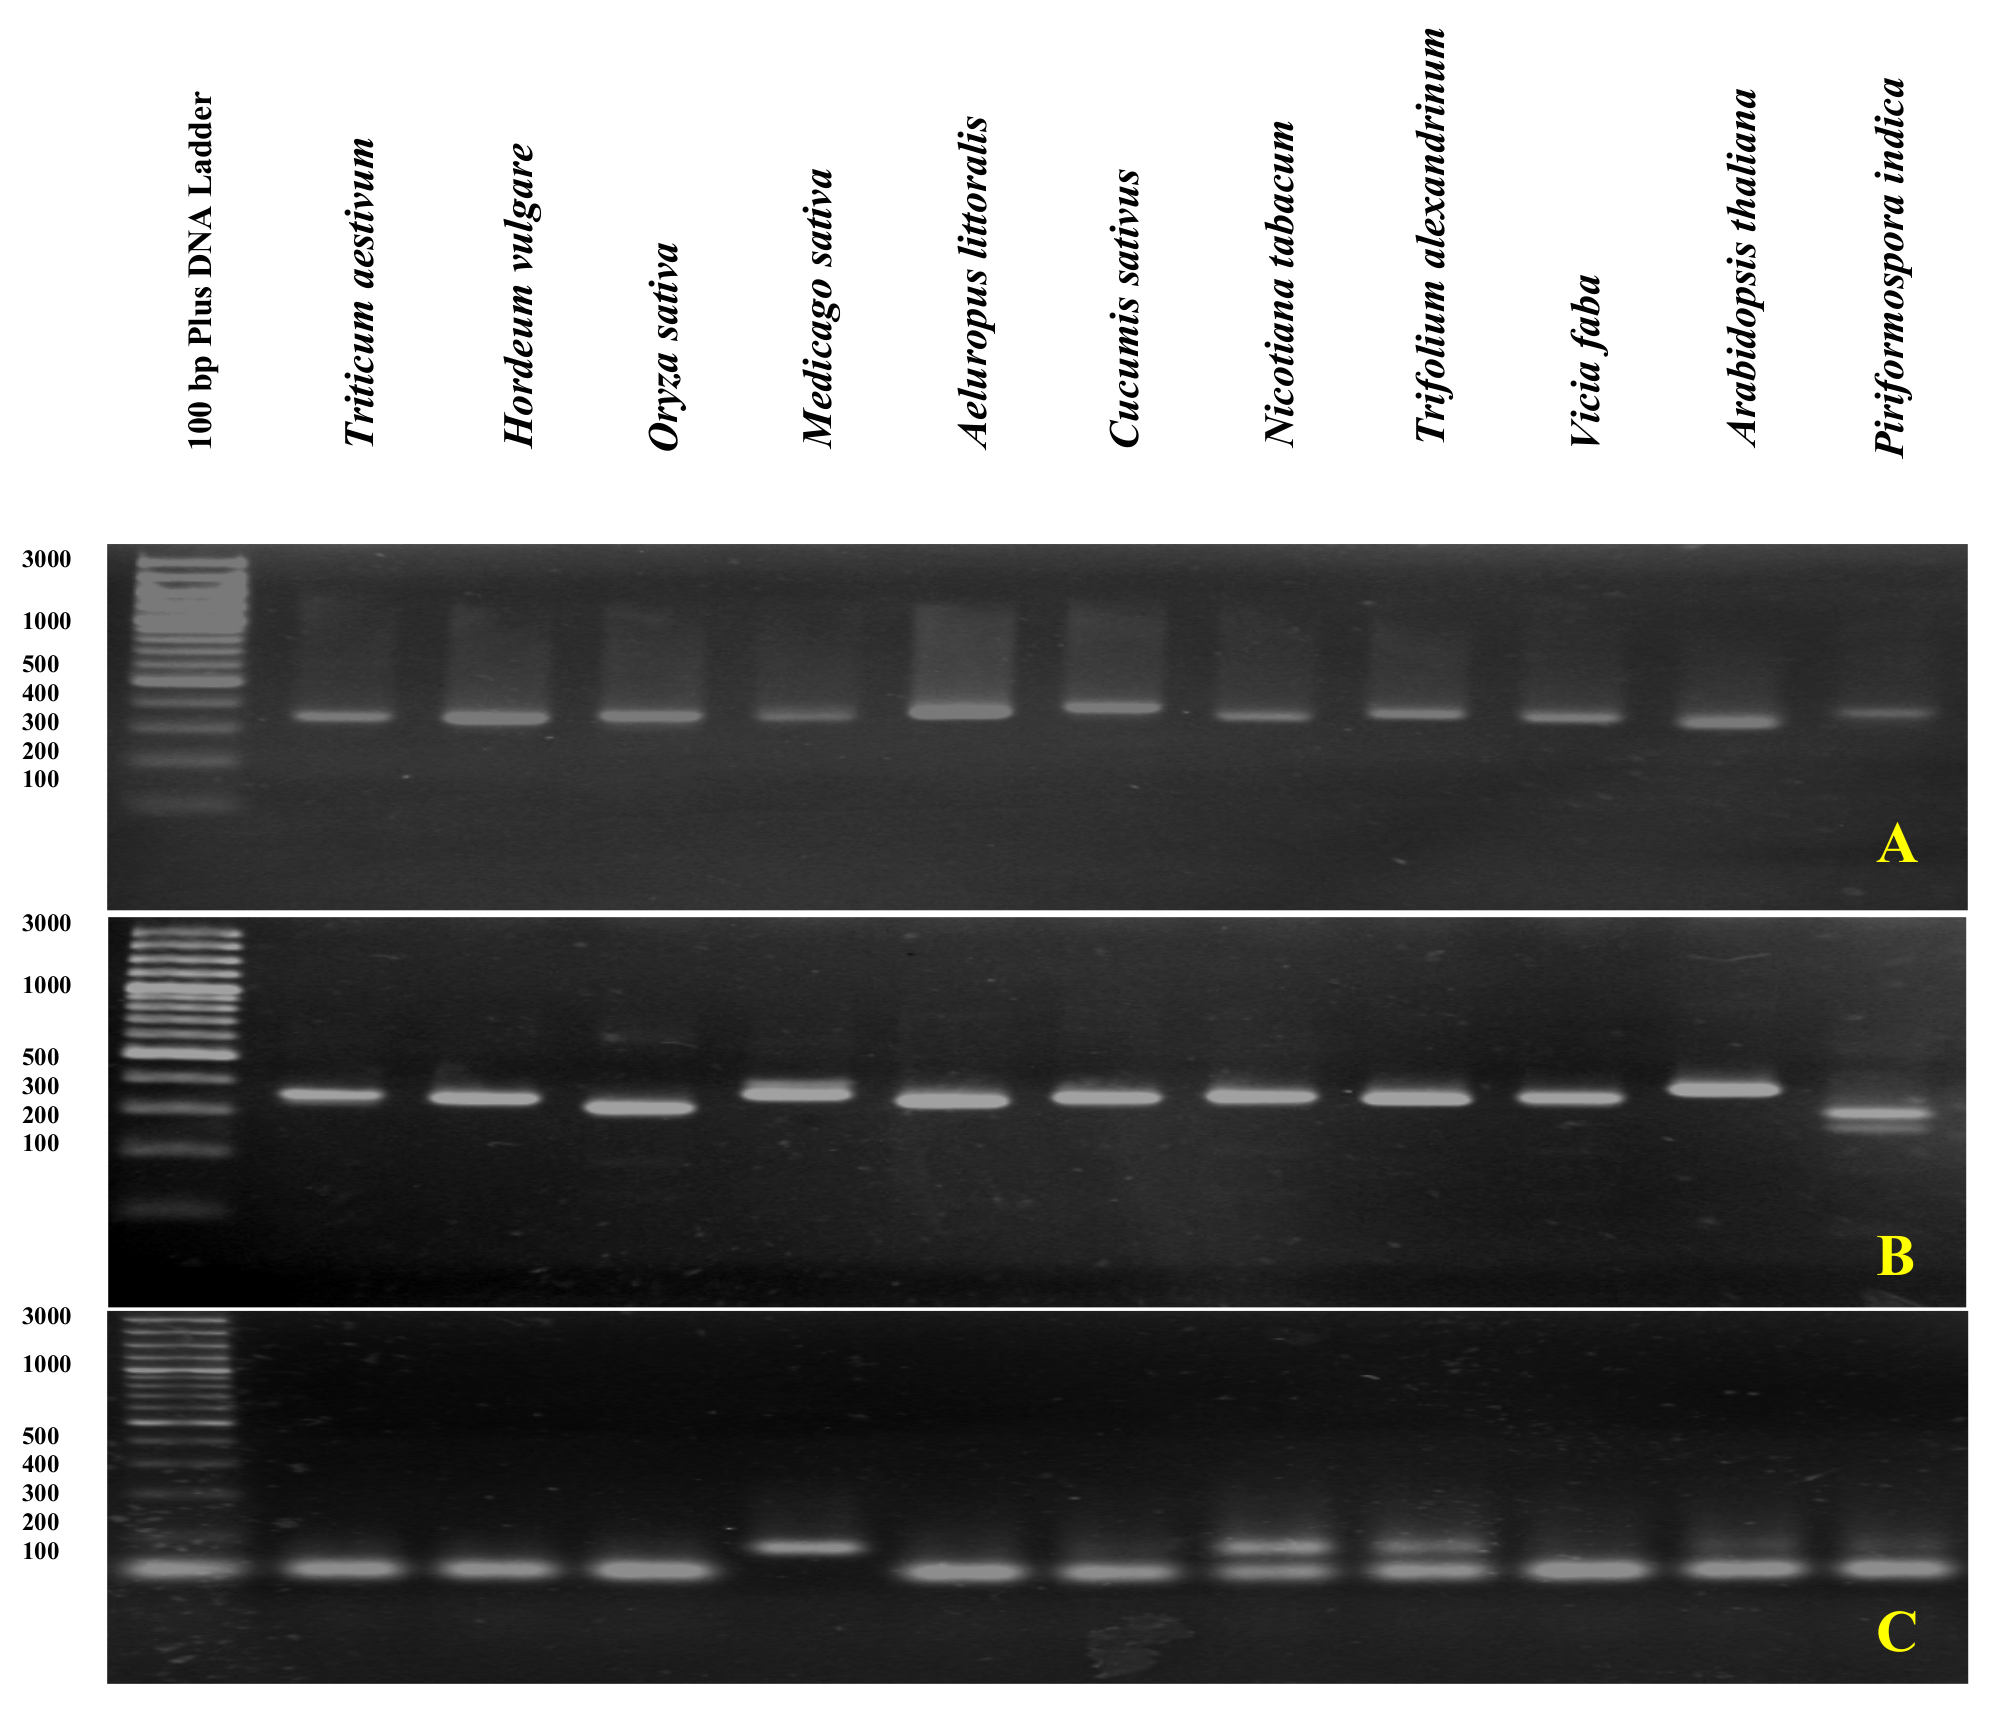 Assessment of DNA Contamination in RNA Samples Based on